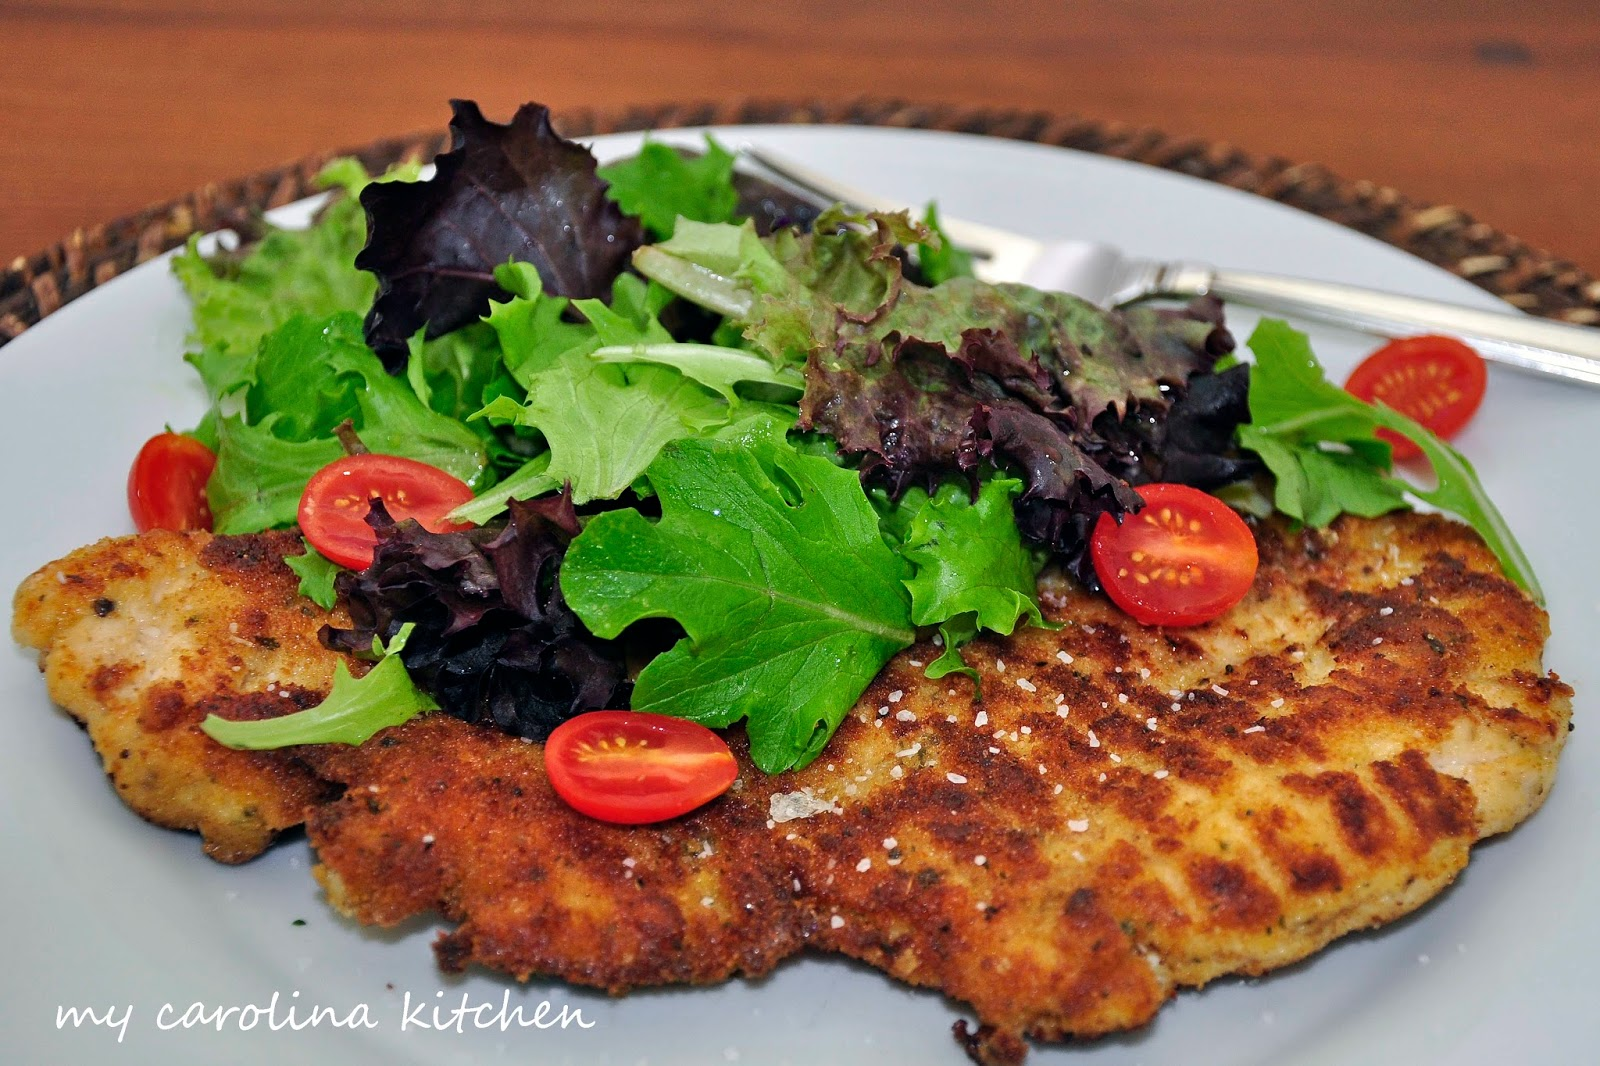 ... : Barefoot Contessa's Parmesan Chicken topped with Salad Recipe